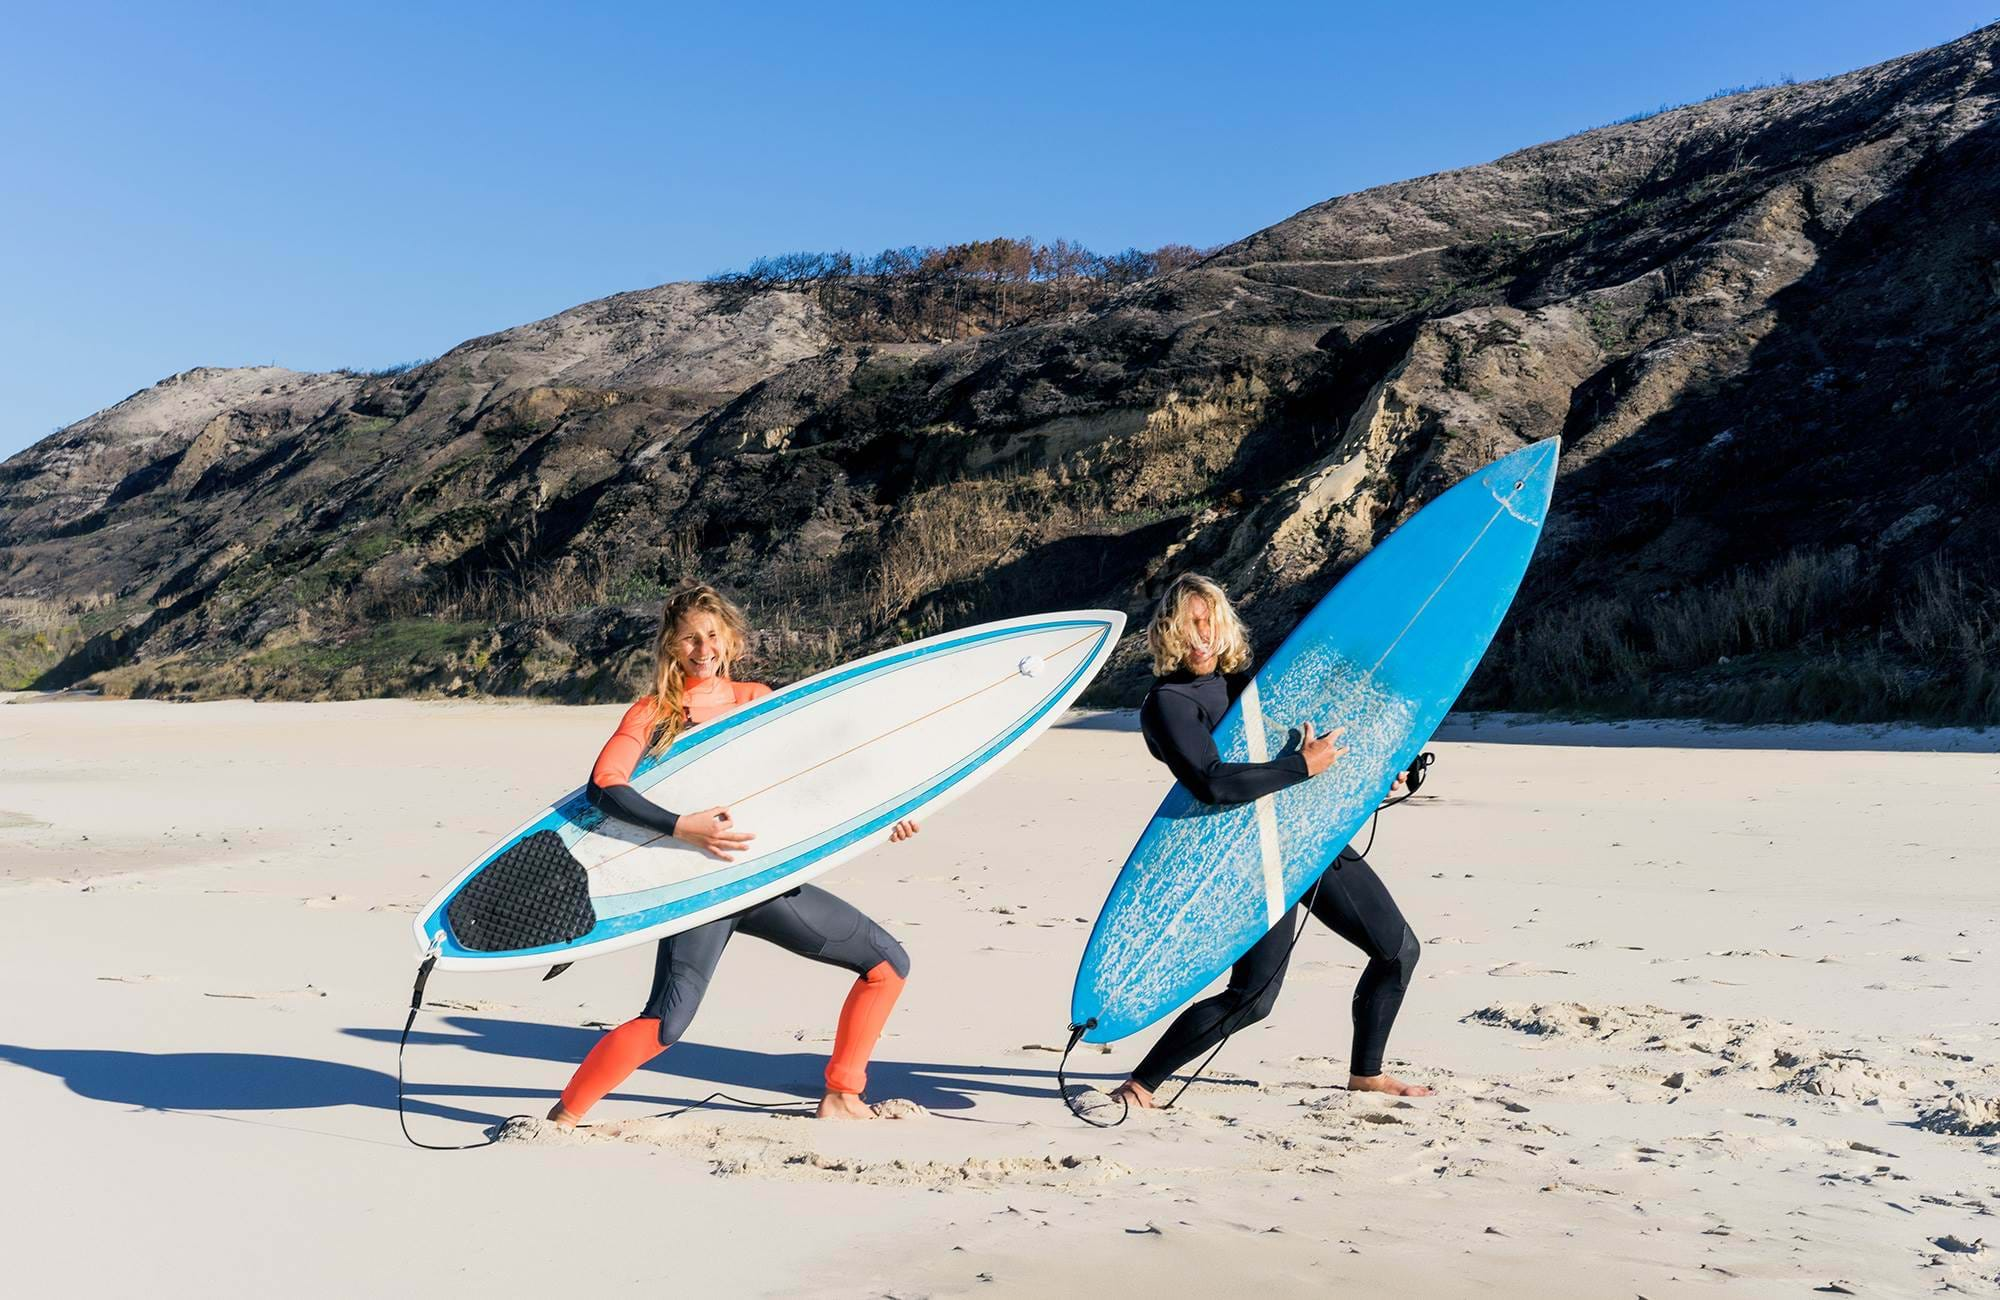 surfing-portugal-man-and-woman-playing-with-surfboards-on-beach-cover